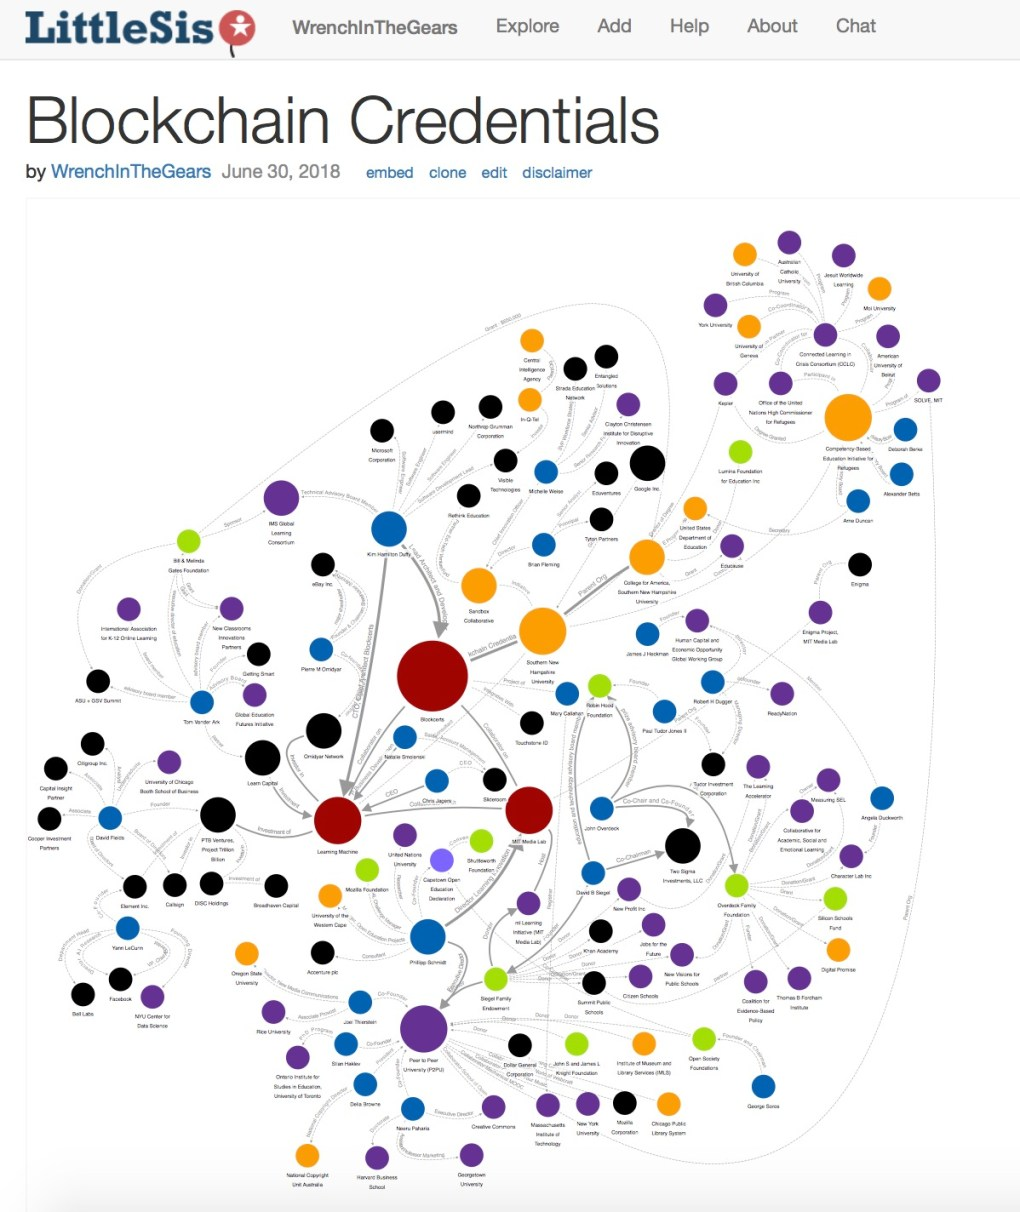 Blockchain Credentials